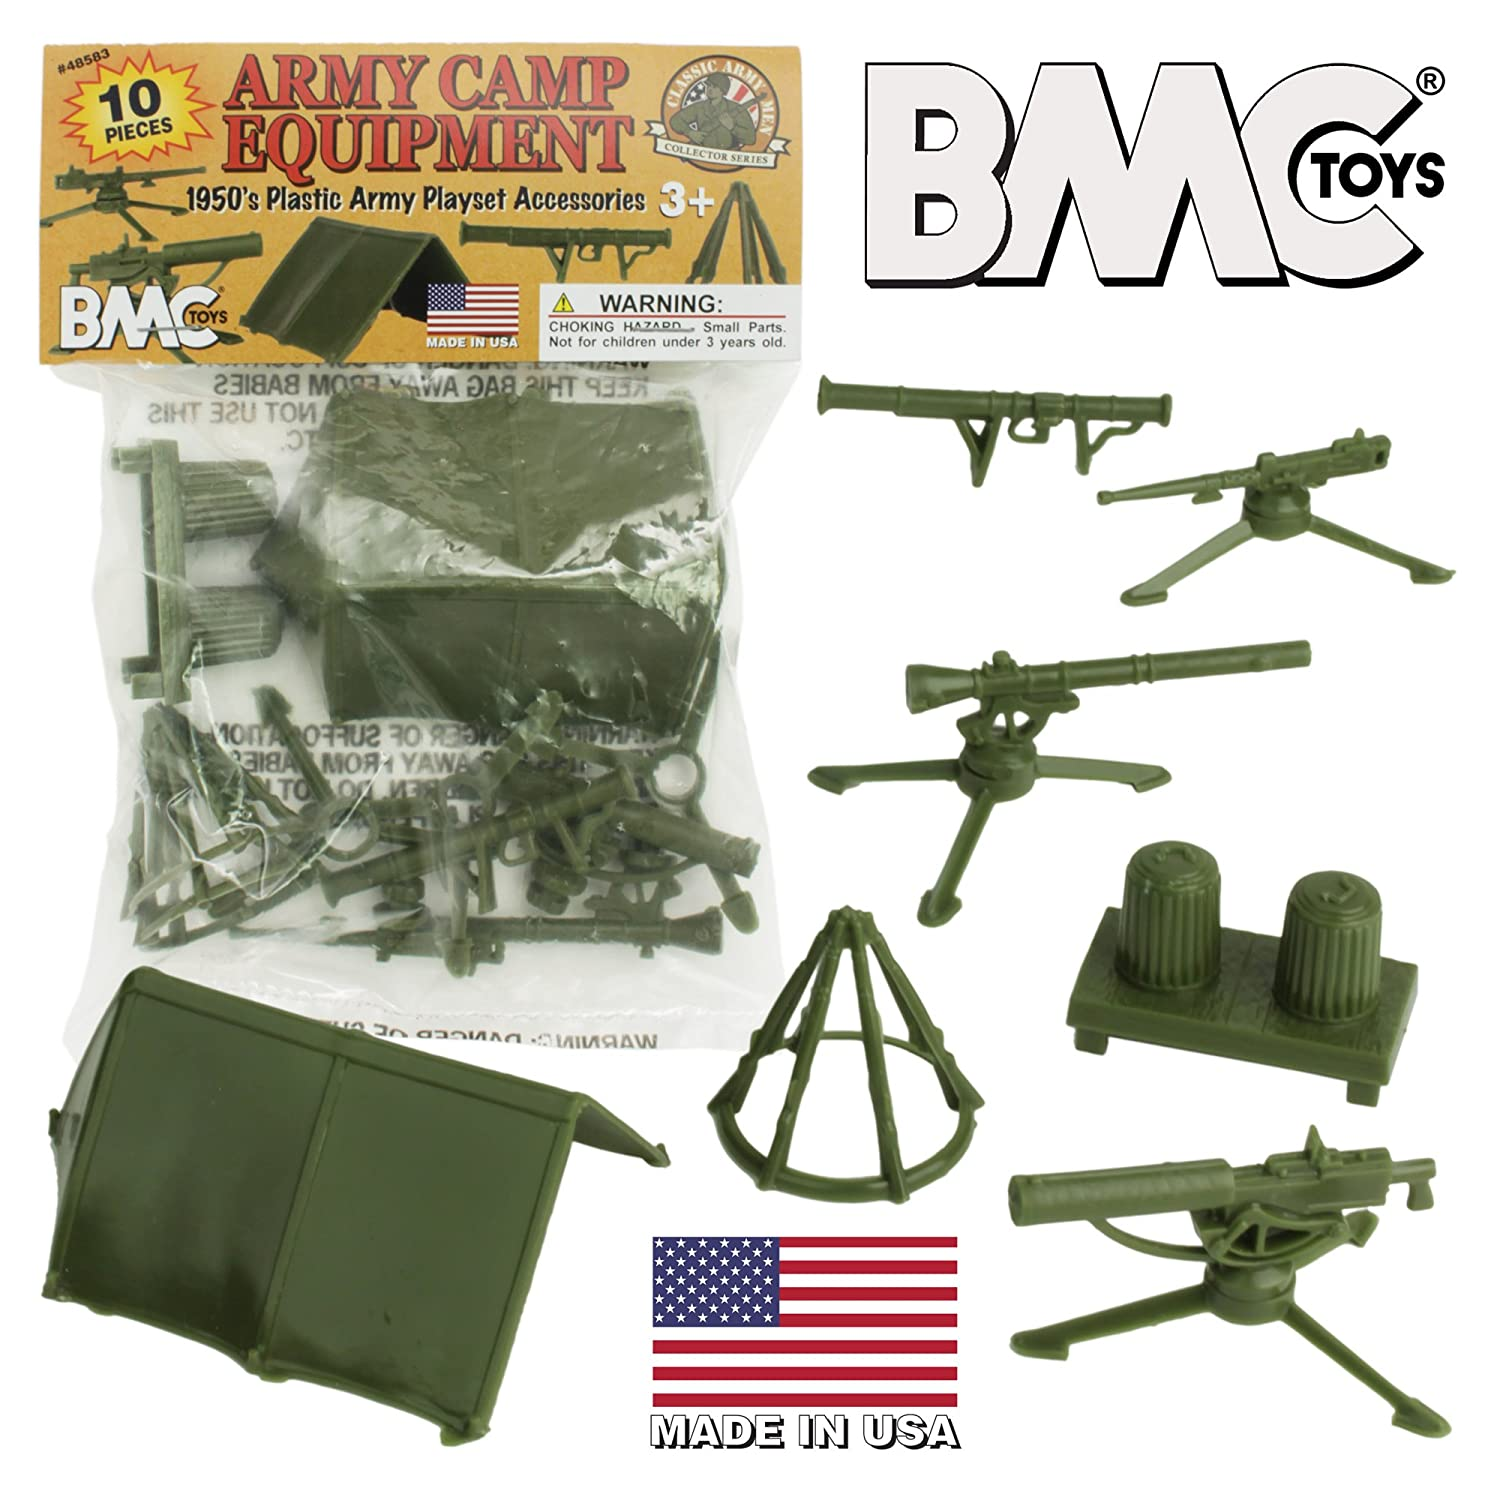 BMC Classic PLASTIC ARMY MEN Playset Accessories - 10pc Military Camp - US Made BMC Toys